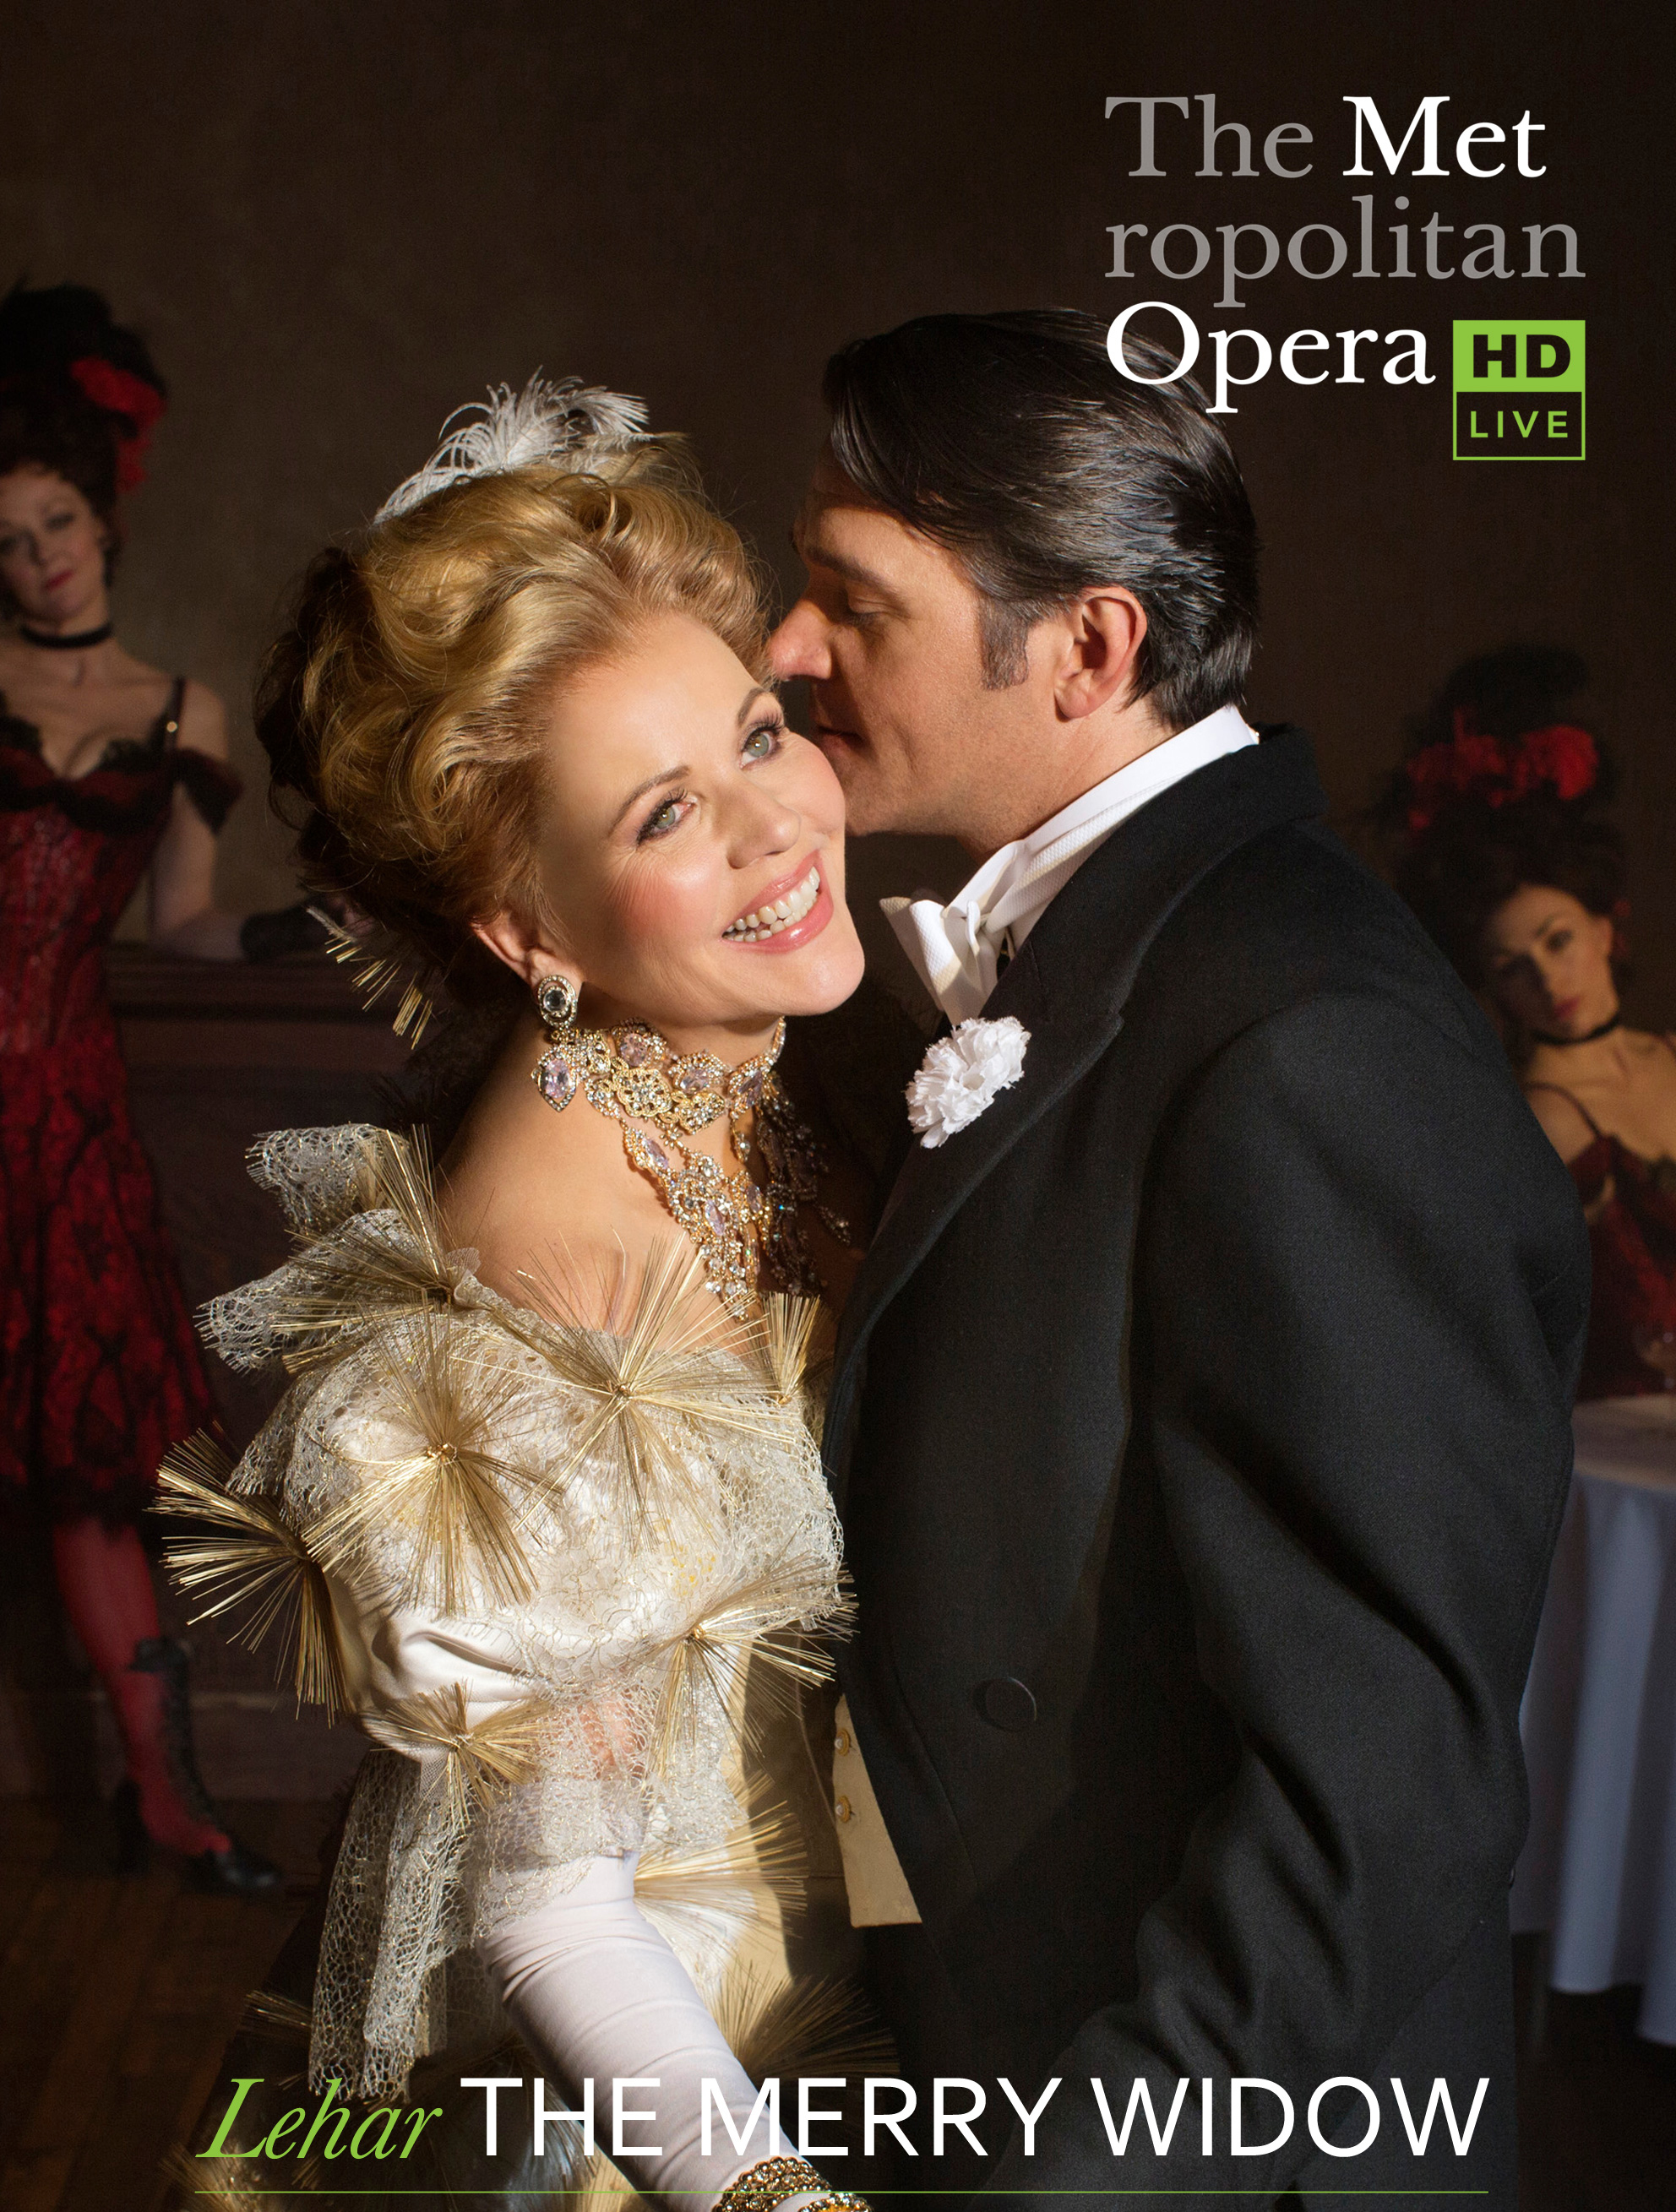 The Metropolitan Opera: The Merry Widow